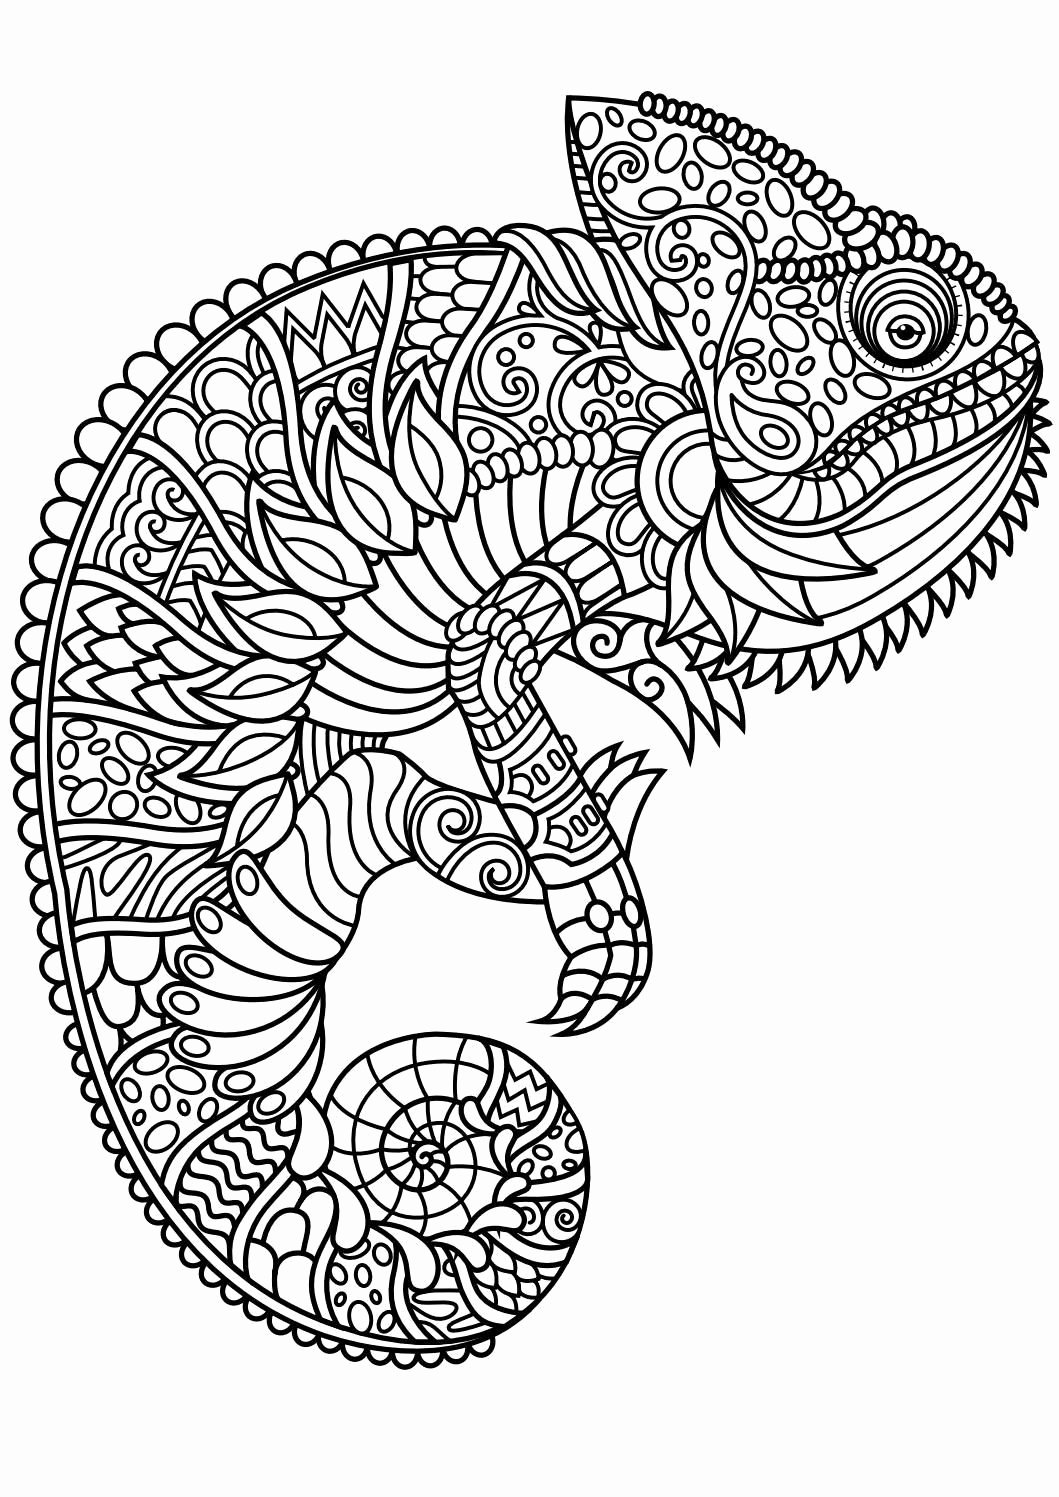 Elephant Mandala Coloring Pages Inspirational 23 Elephant Mandala Coloring Pages Download Coloring Sheets